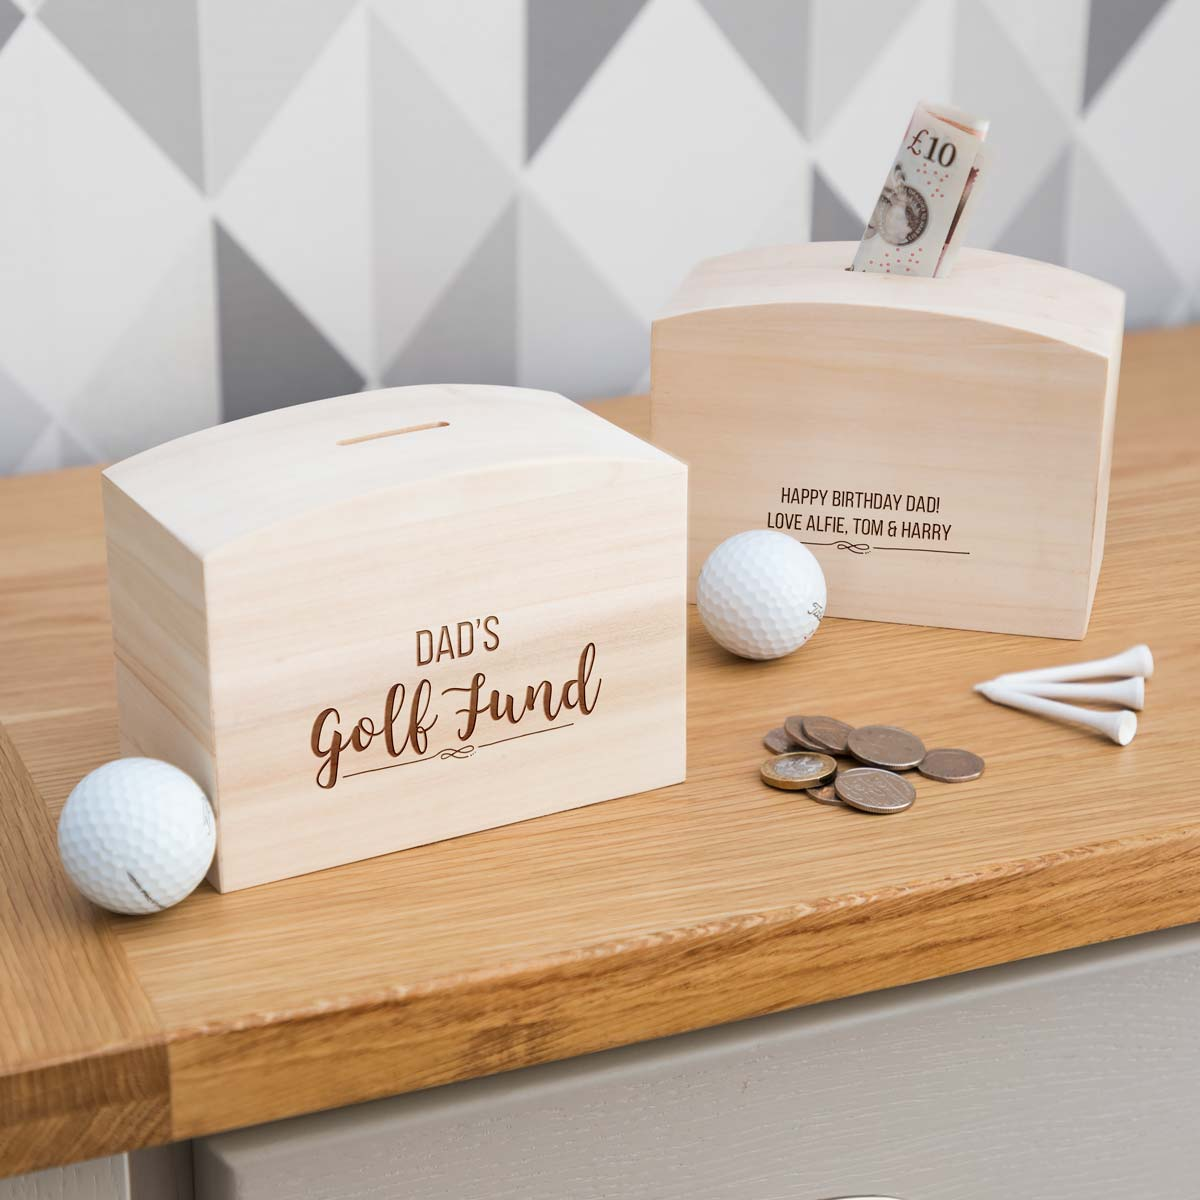 Personalised Golf Fund Money Box With Message